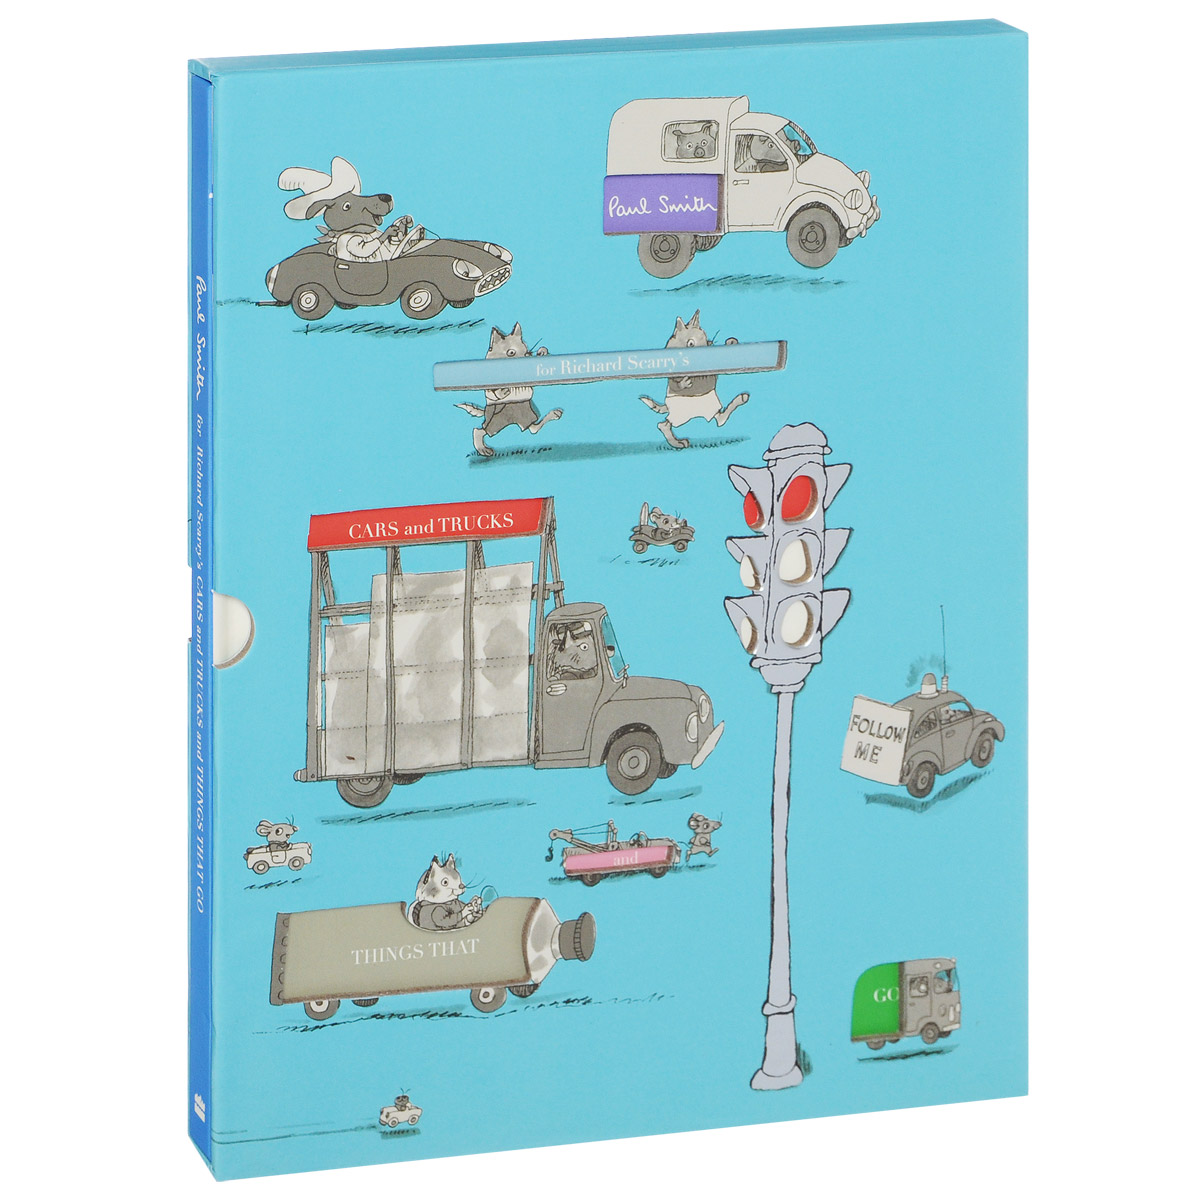 Richard Scarry's Cars and Trucks and Things That Go wilbur s book of things that go